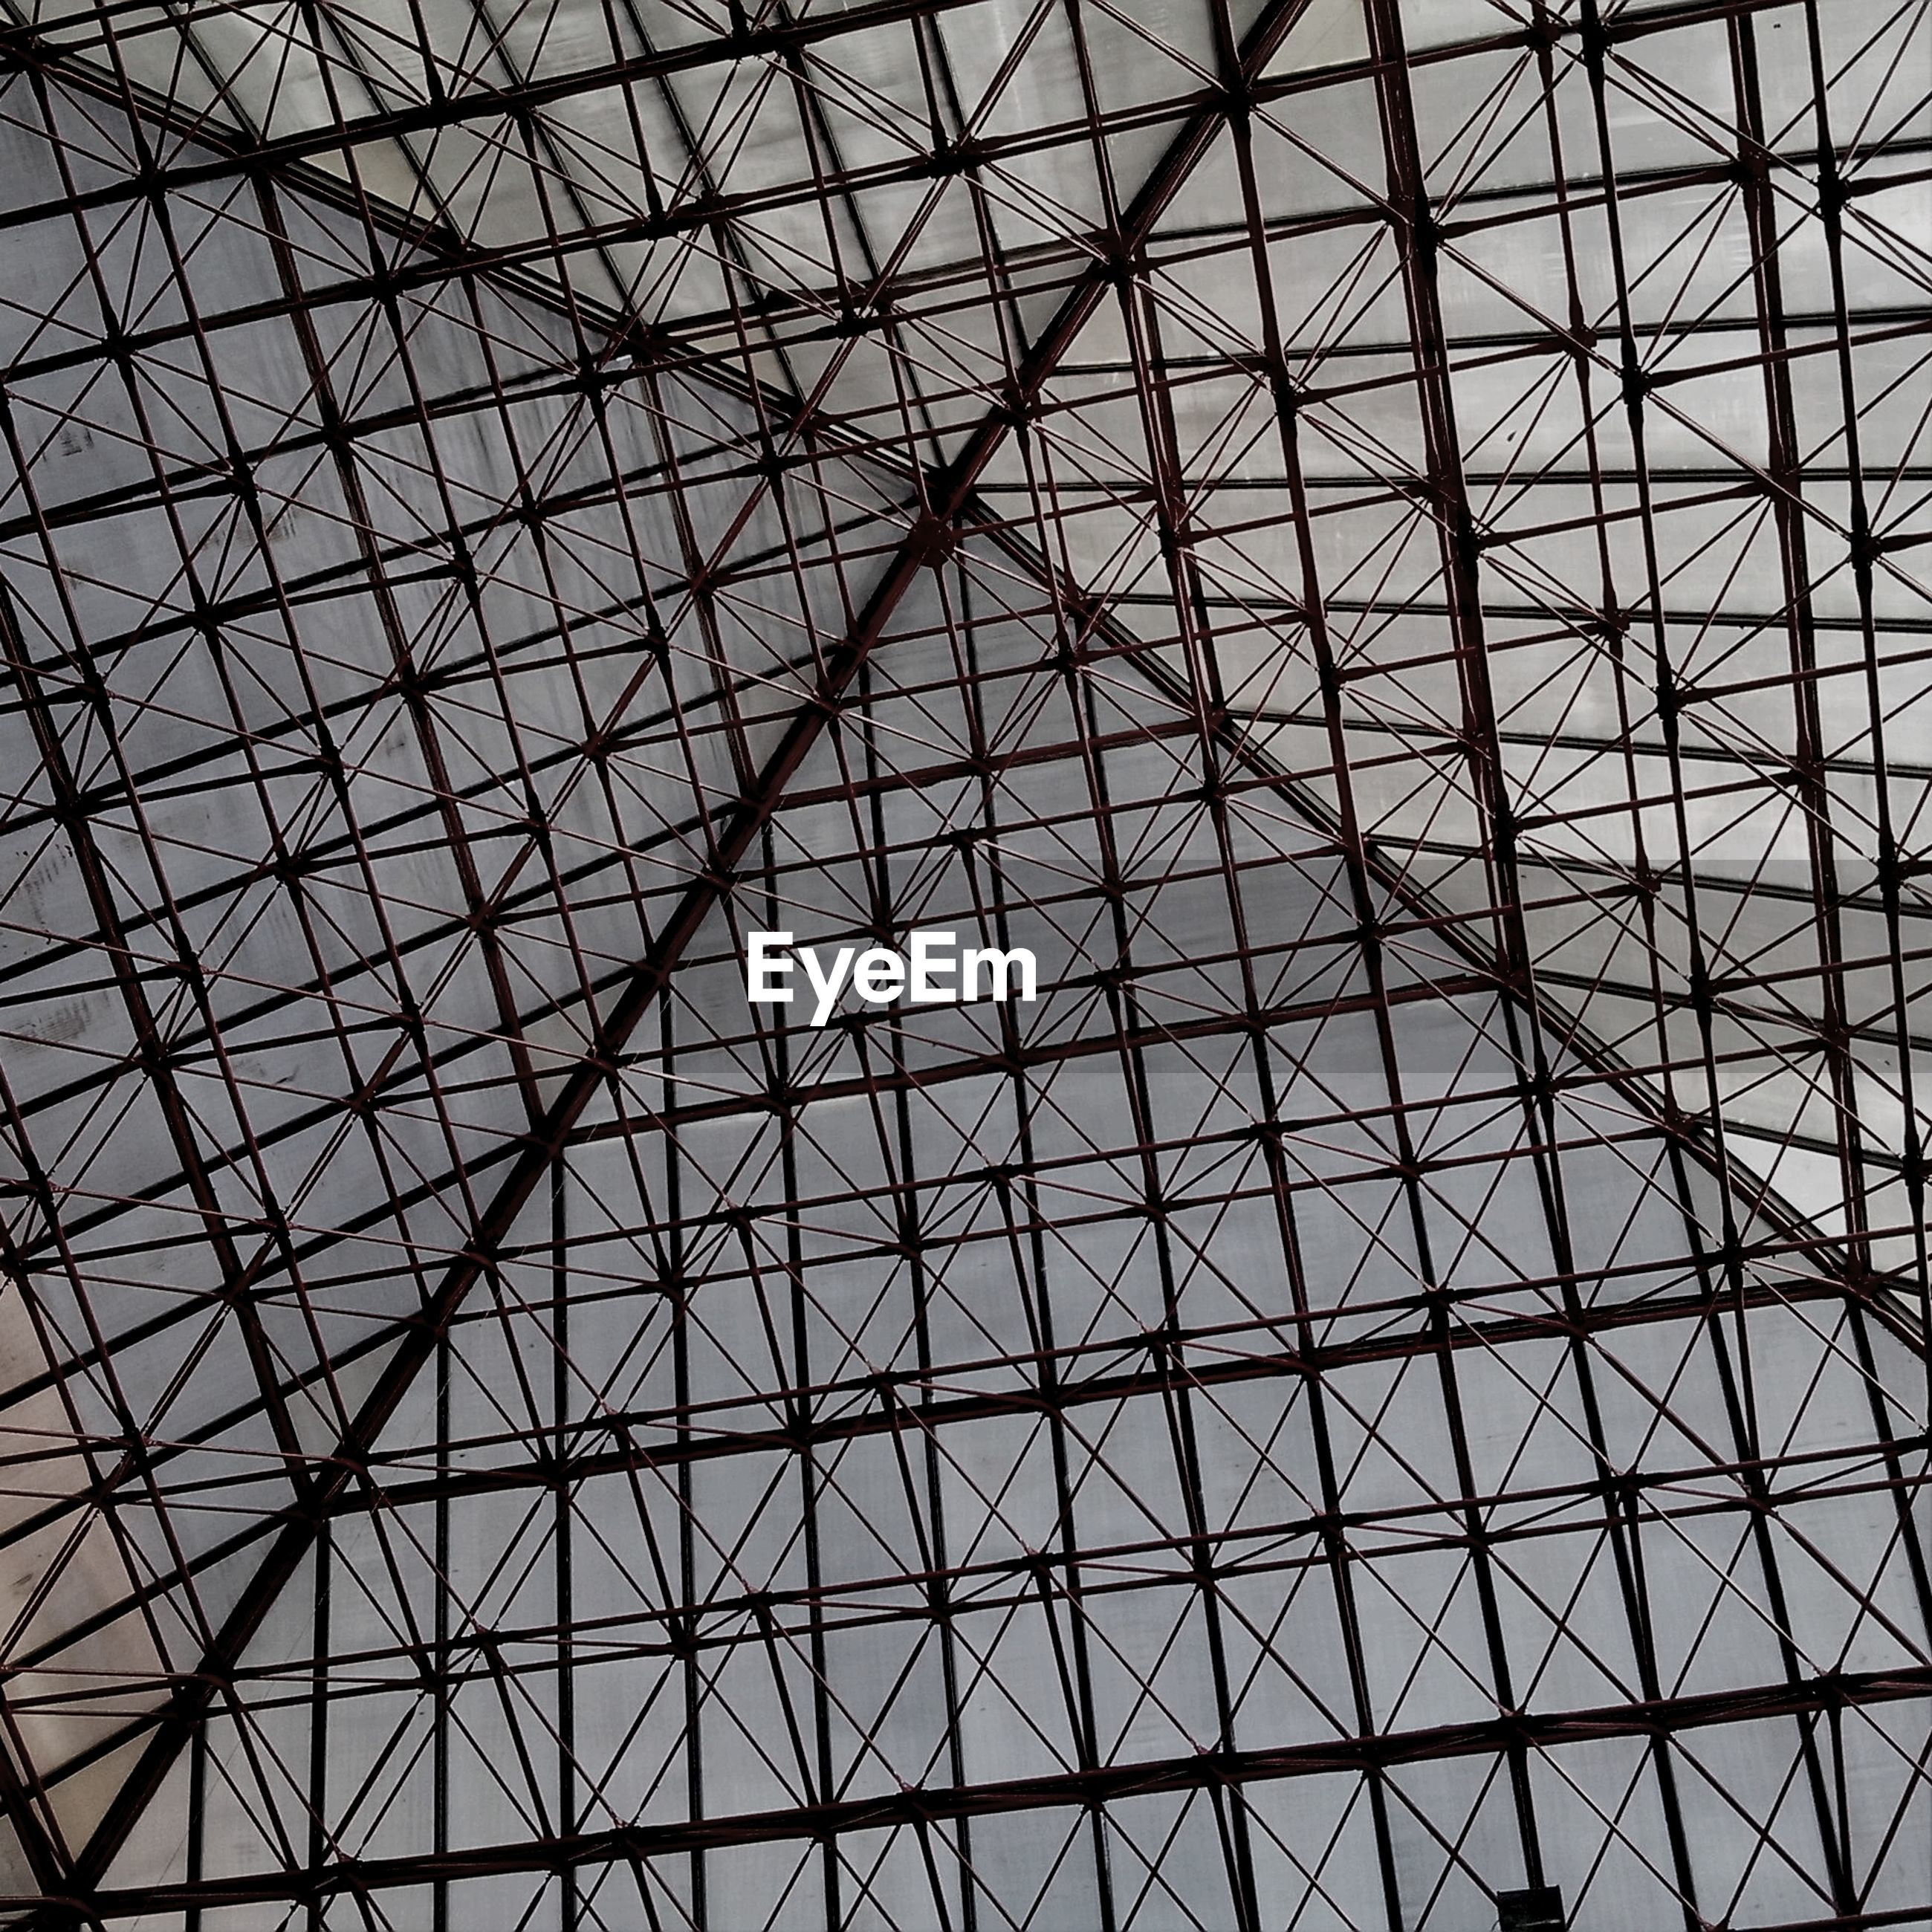 low angle view, ceiling, built structure, architecture, pattern, architectural feature, full frame, design, indoors, backgrounds, directly below, glass - material, sky, modern, skylight, grid, day, metal, geometric shape, no people